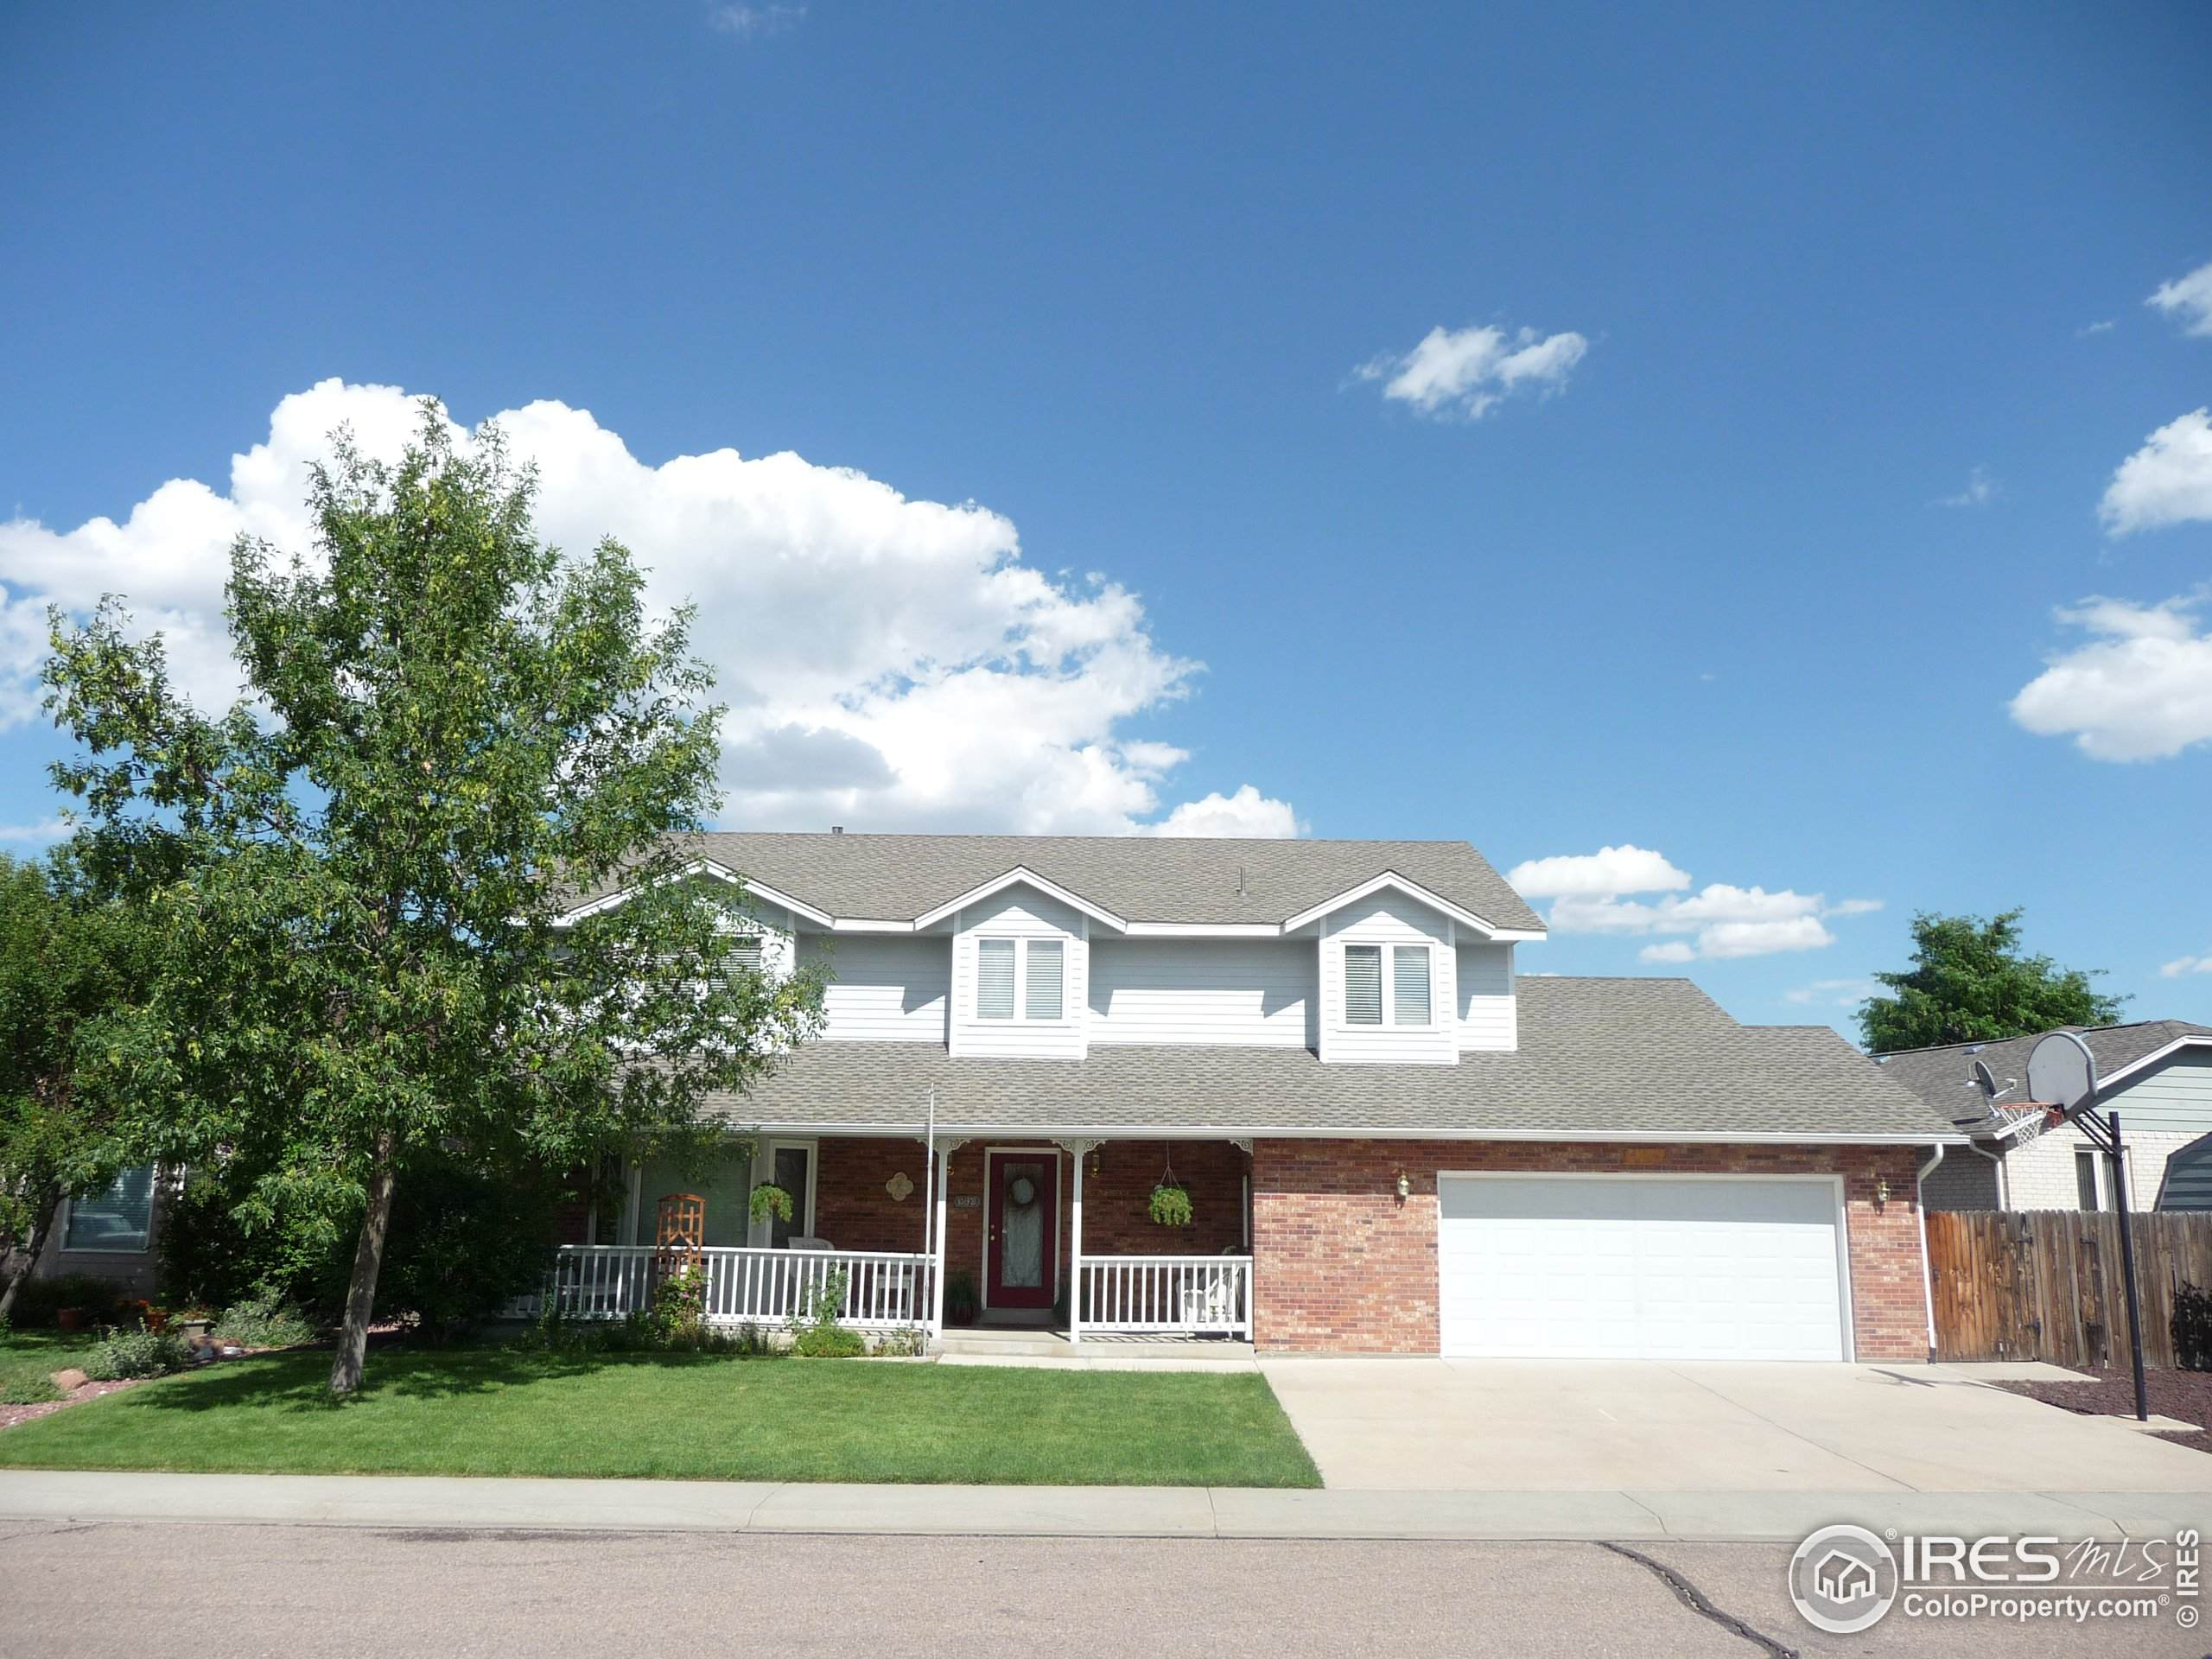 3020 Hackney Ln, Fort Collins, CO 80525 (MLS #934261) :: Downtown Real Estate Partners